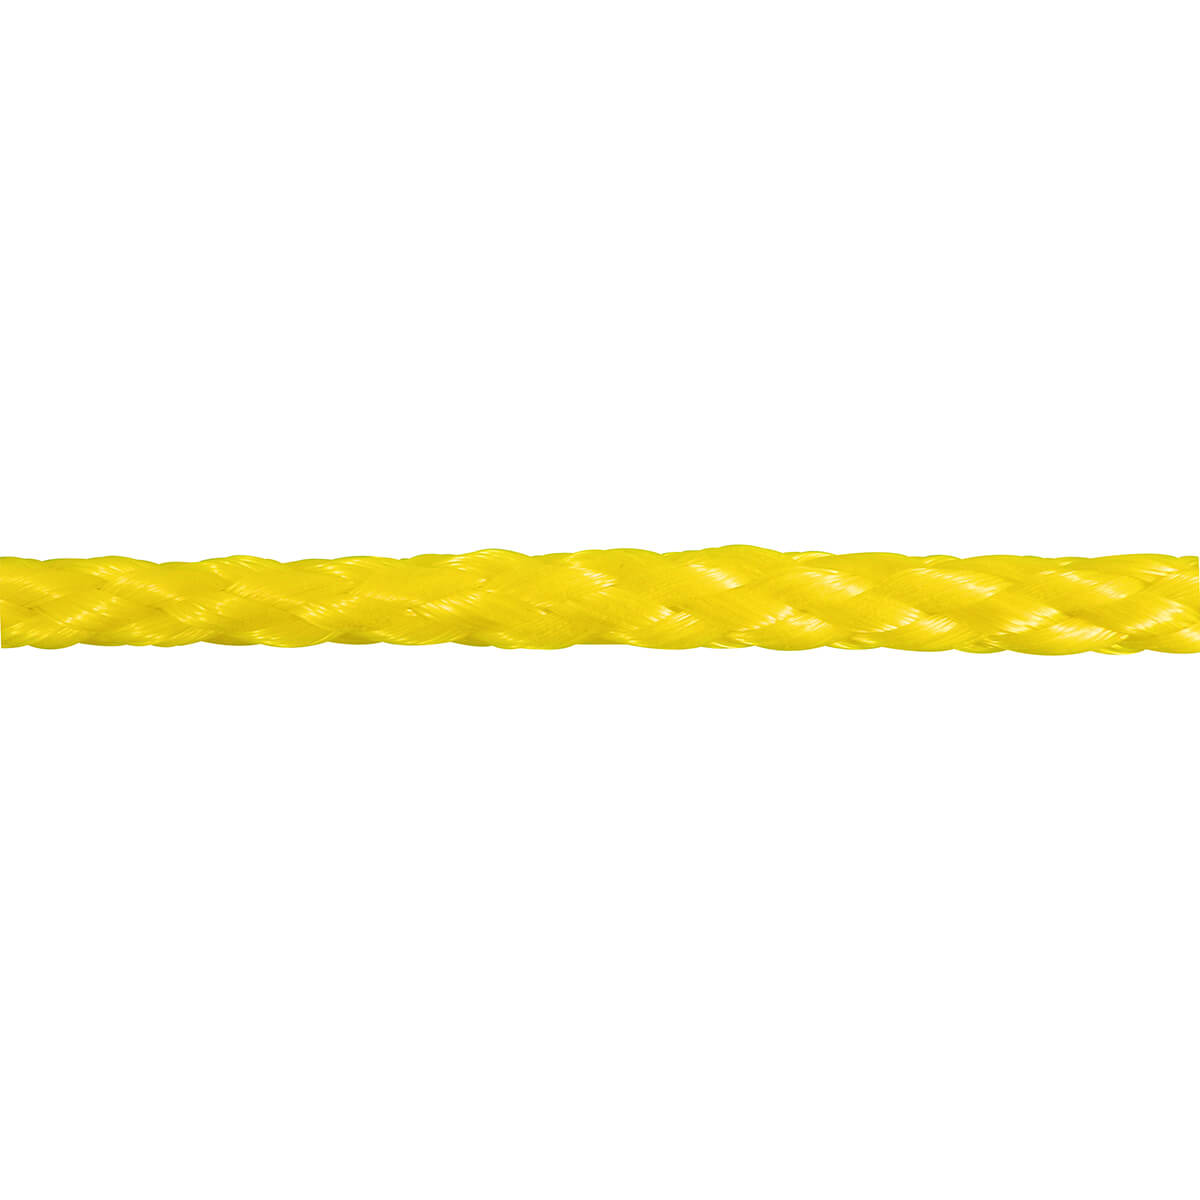 Polypropylene Hollow Core Rope - Yellow - 3/8-in x 50-ft